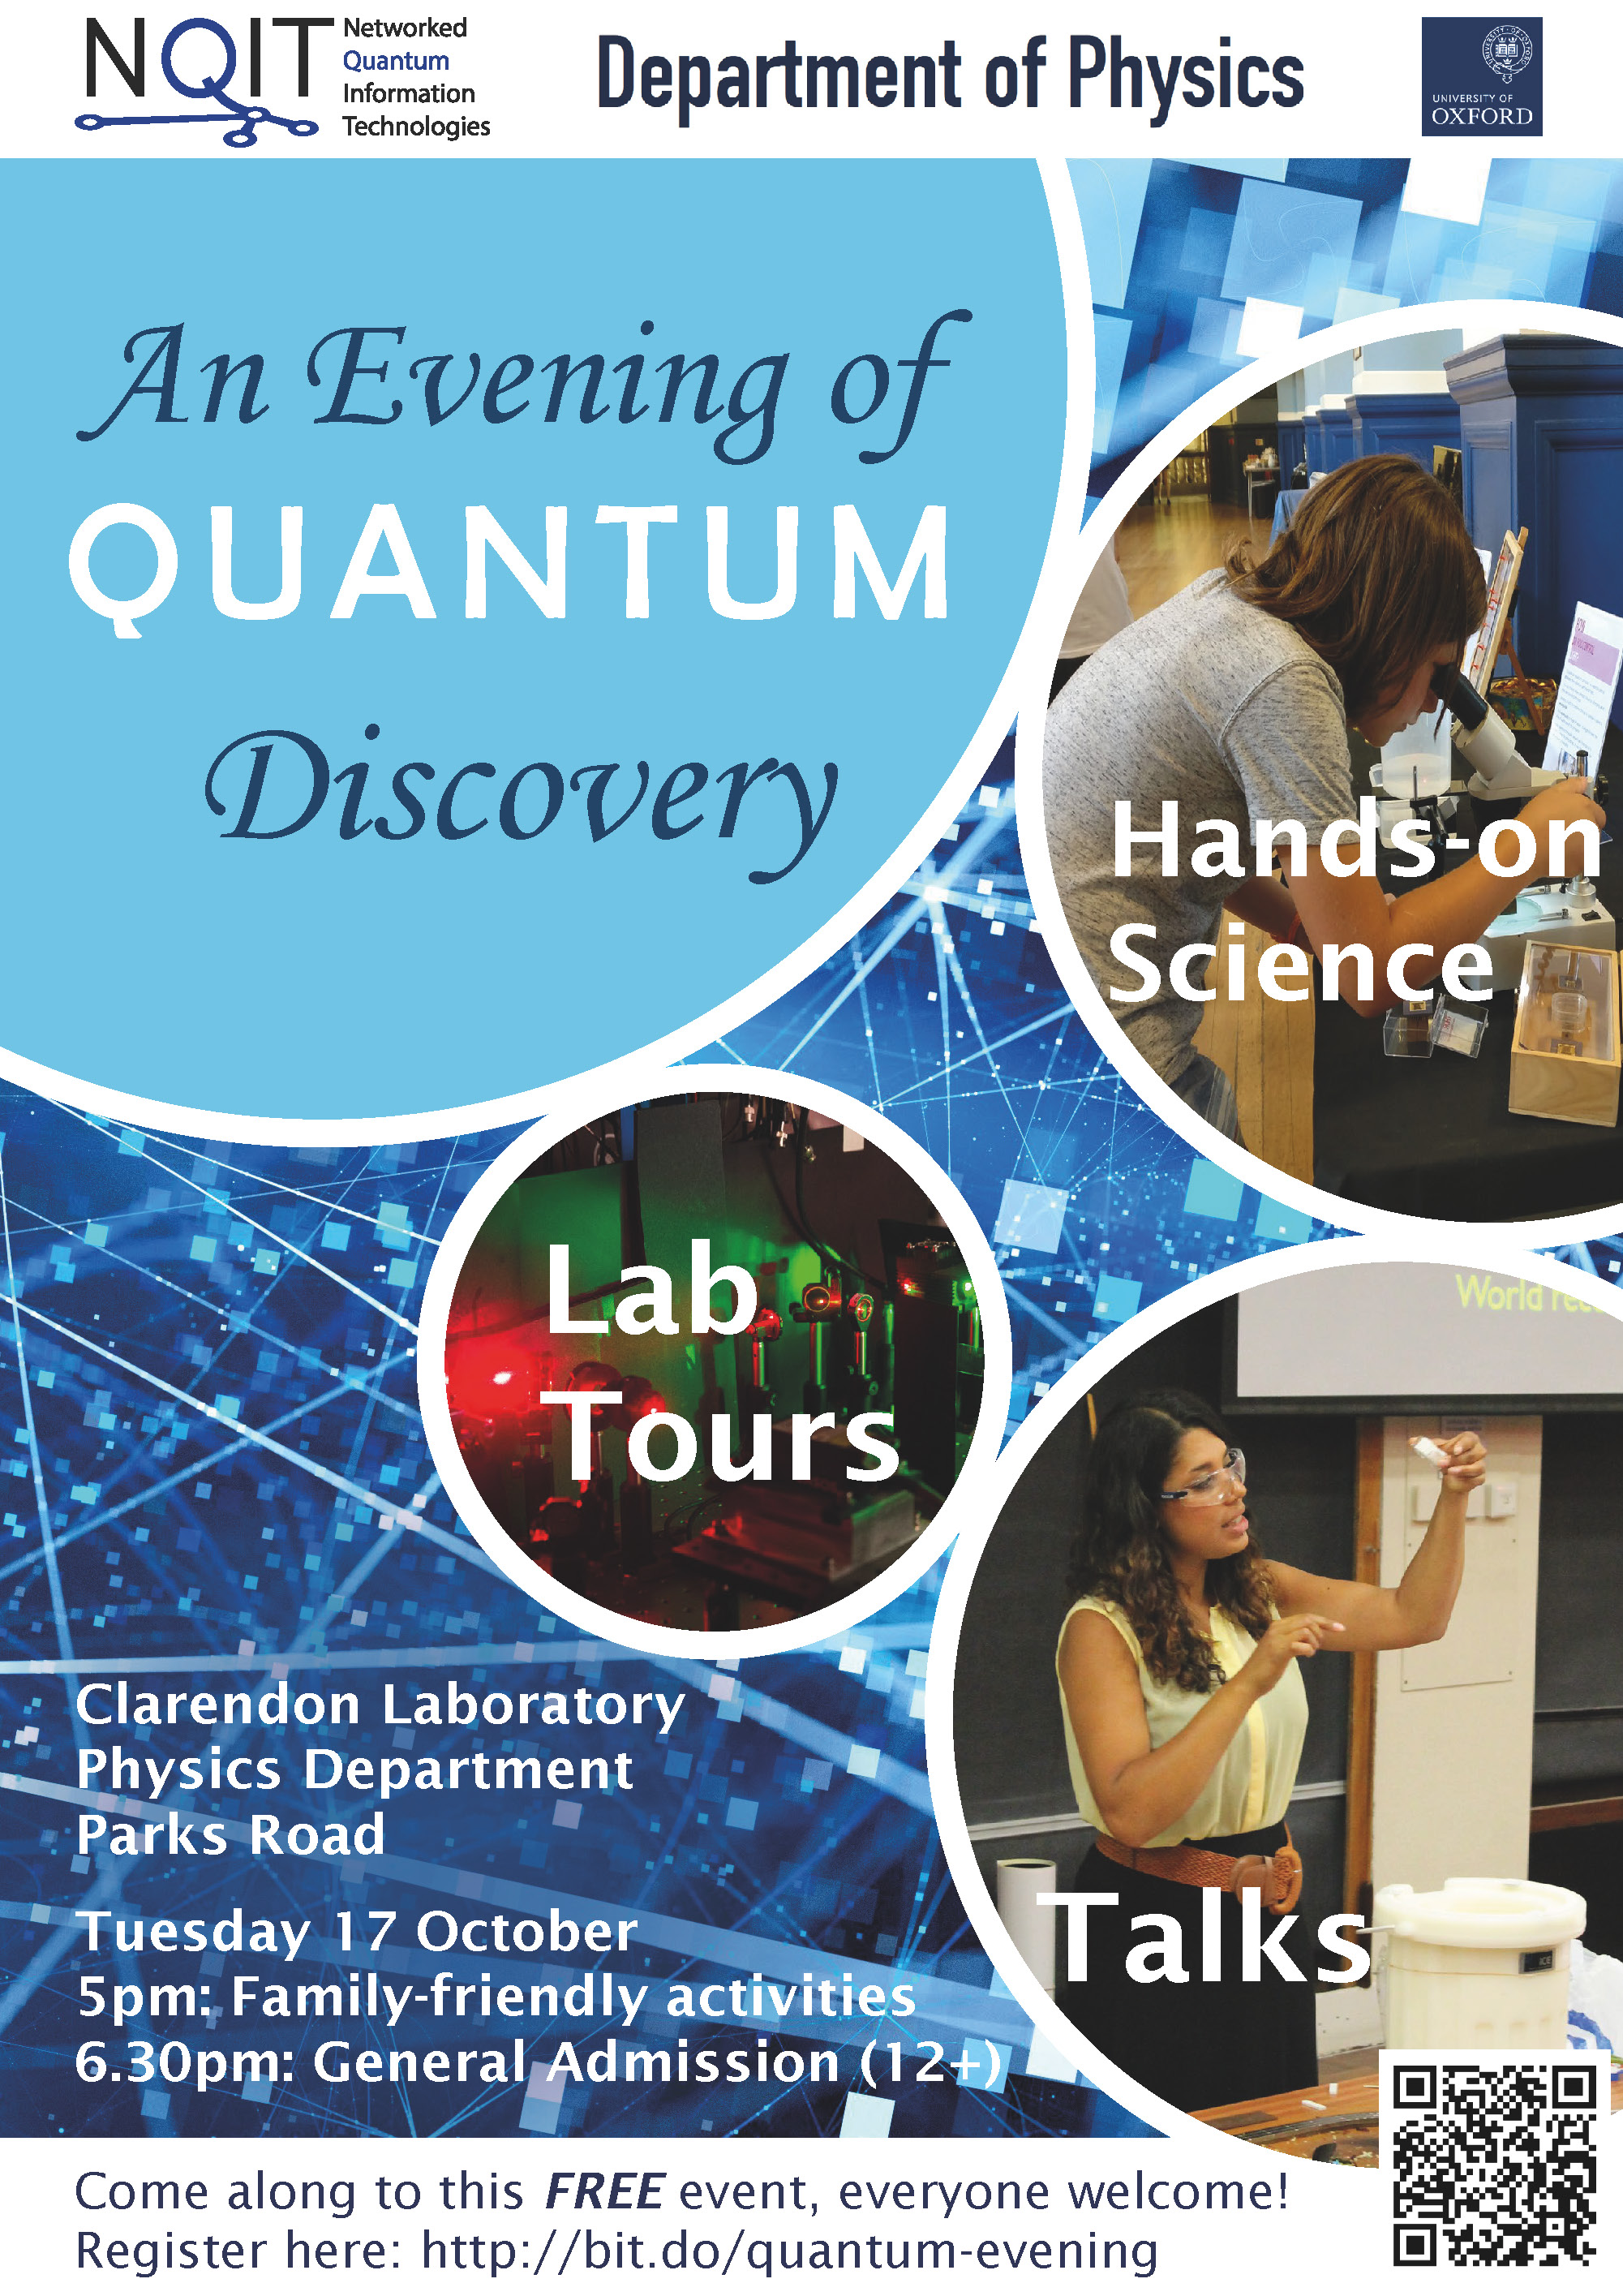 An Evening of Quantum Discovery